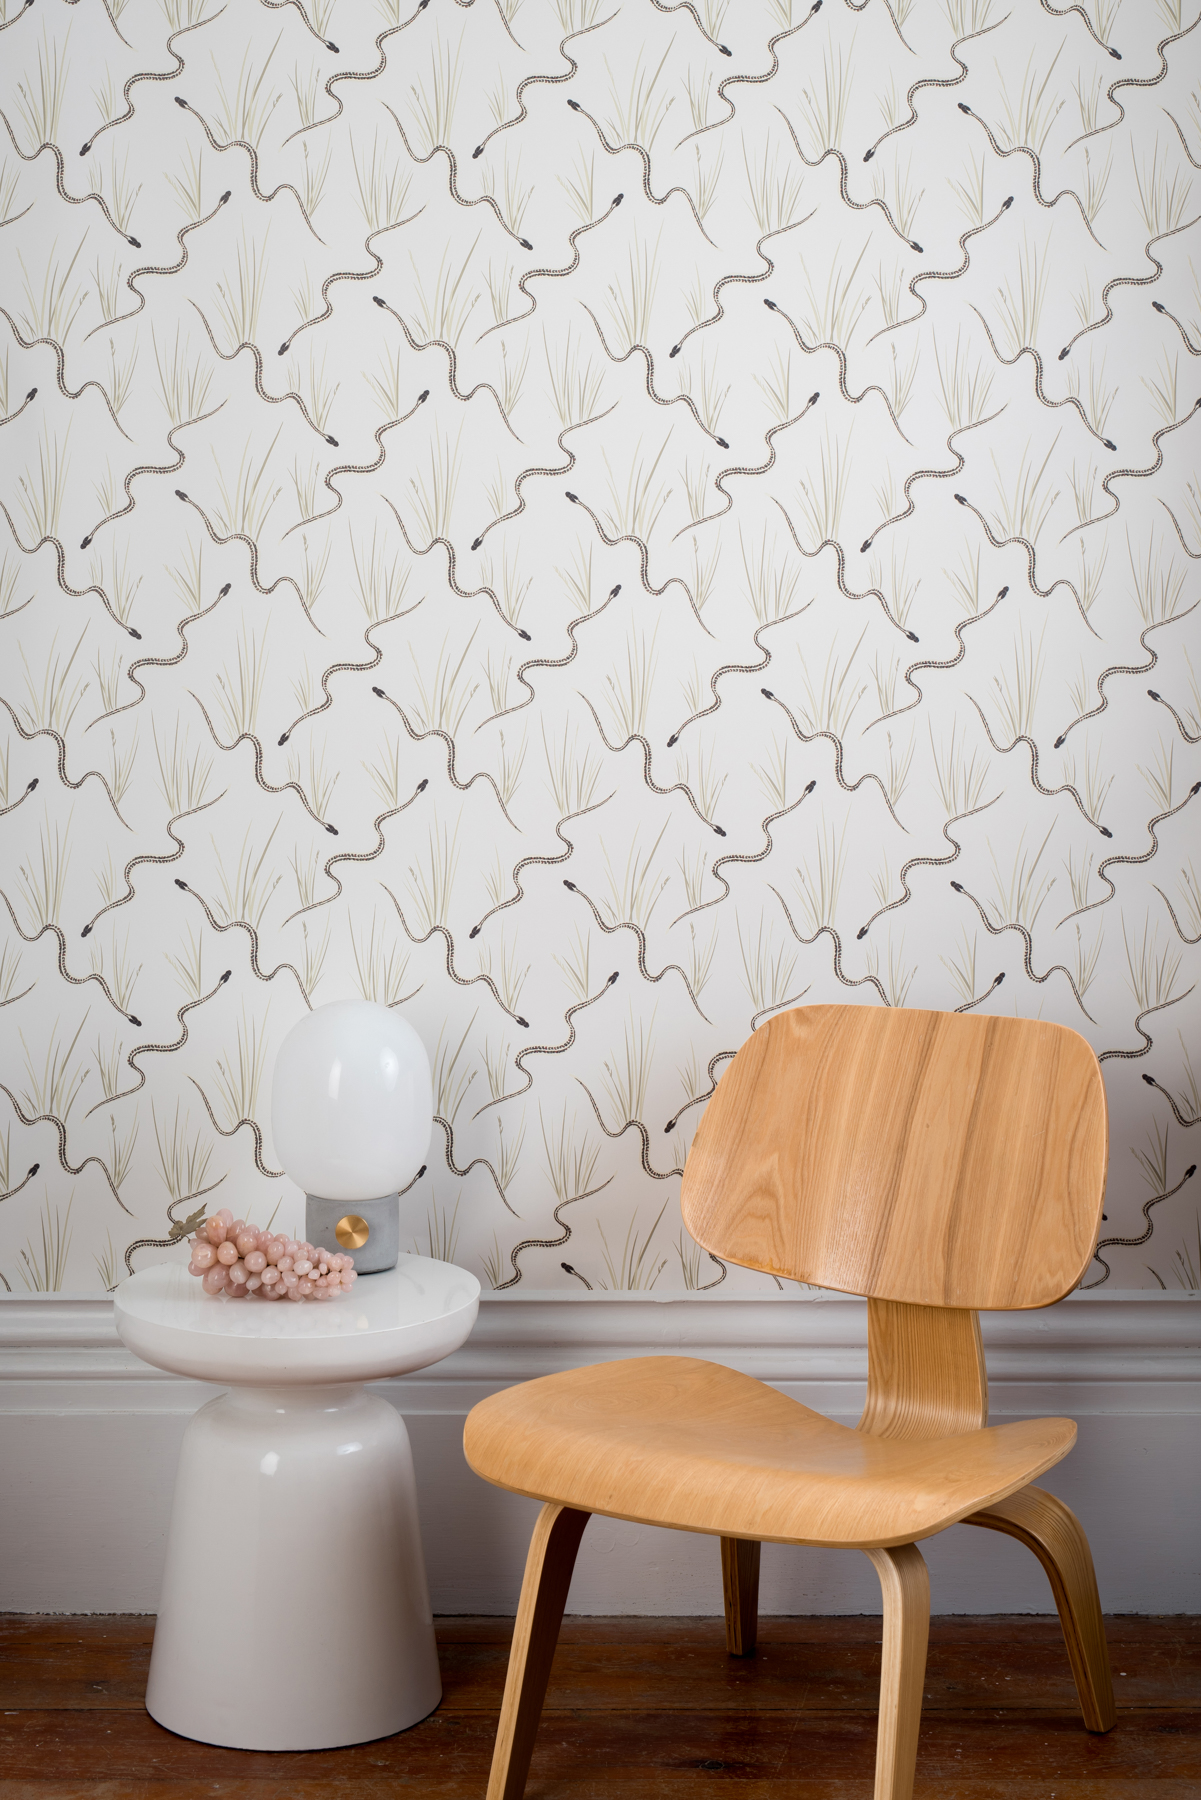 Kate Golding Garter Snake wallpaper // Modern wallcoverings and interior decor.